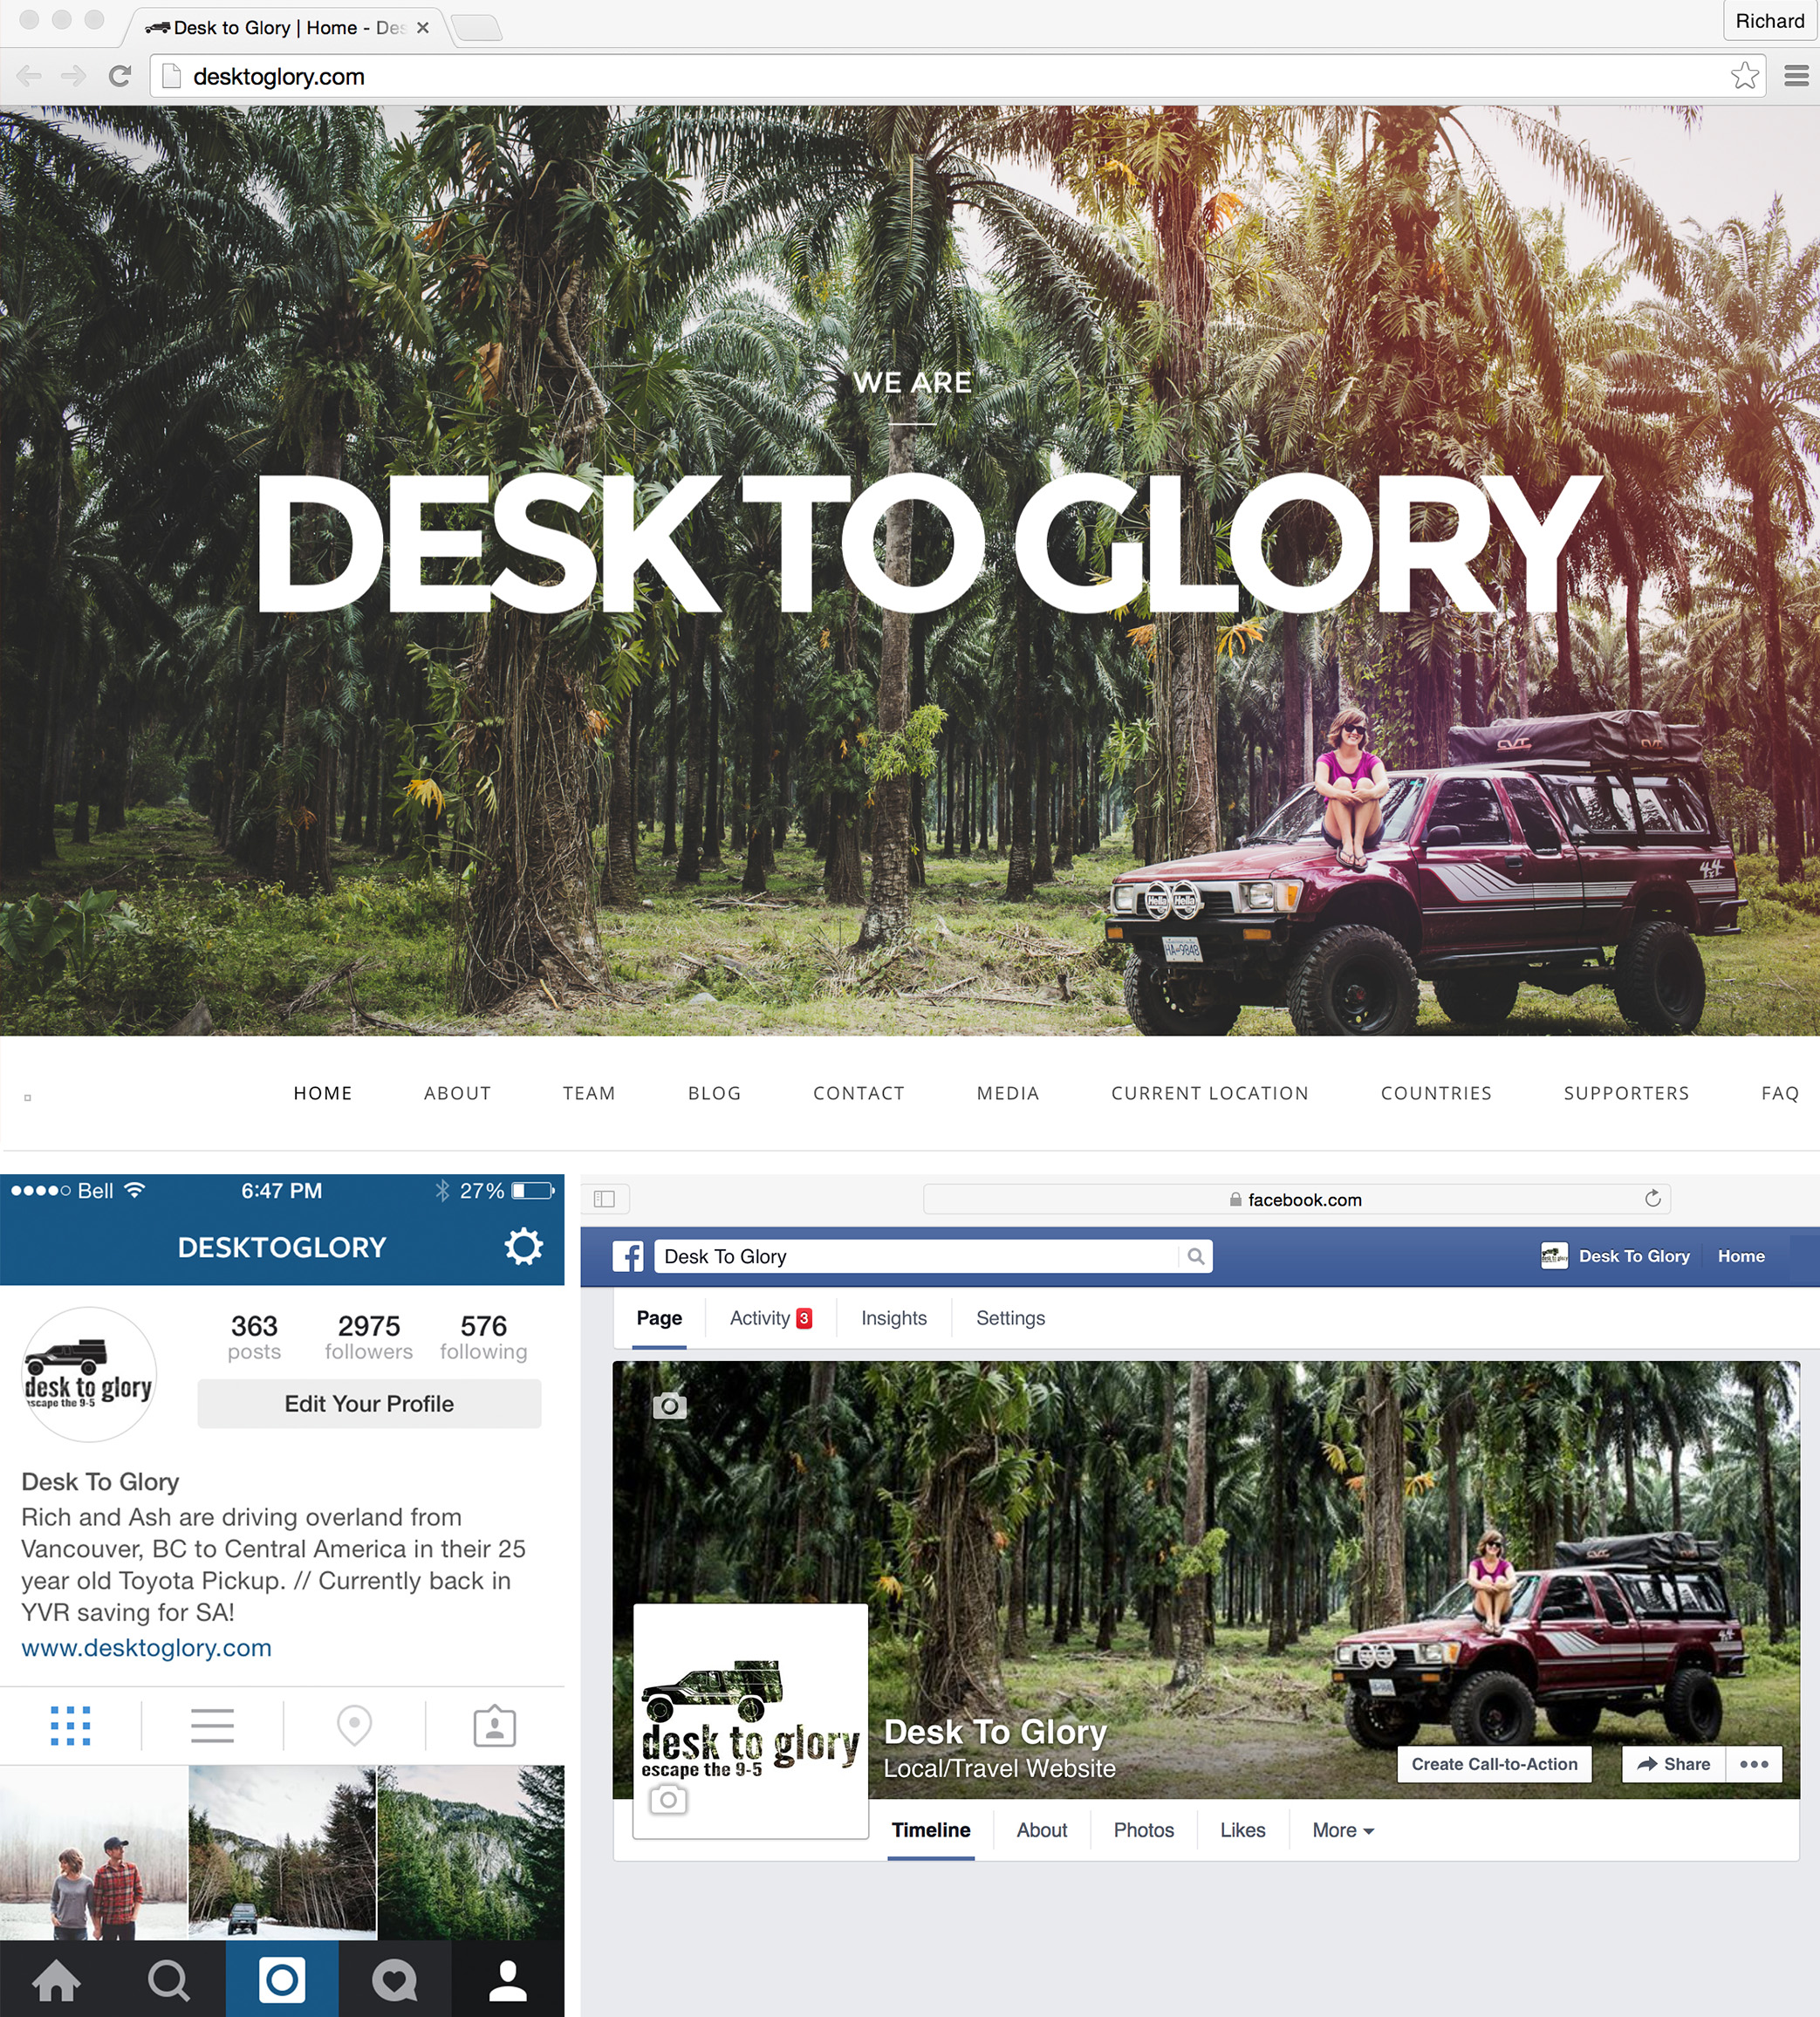 desktoglory_social_media